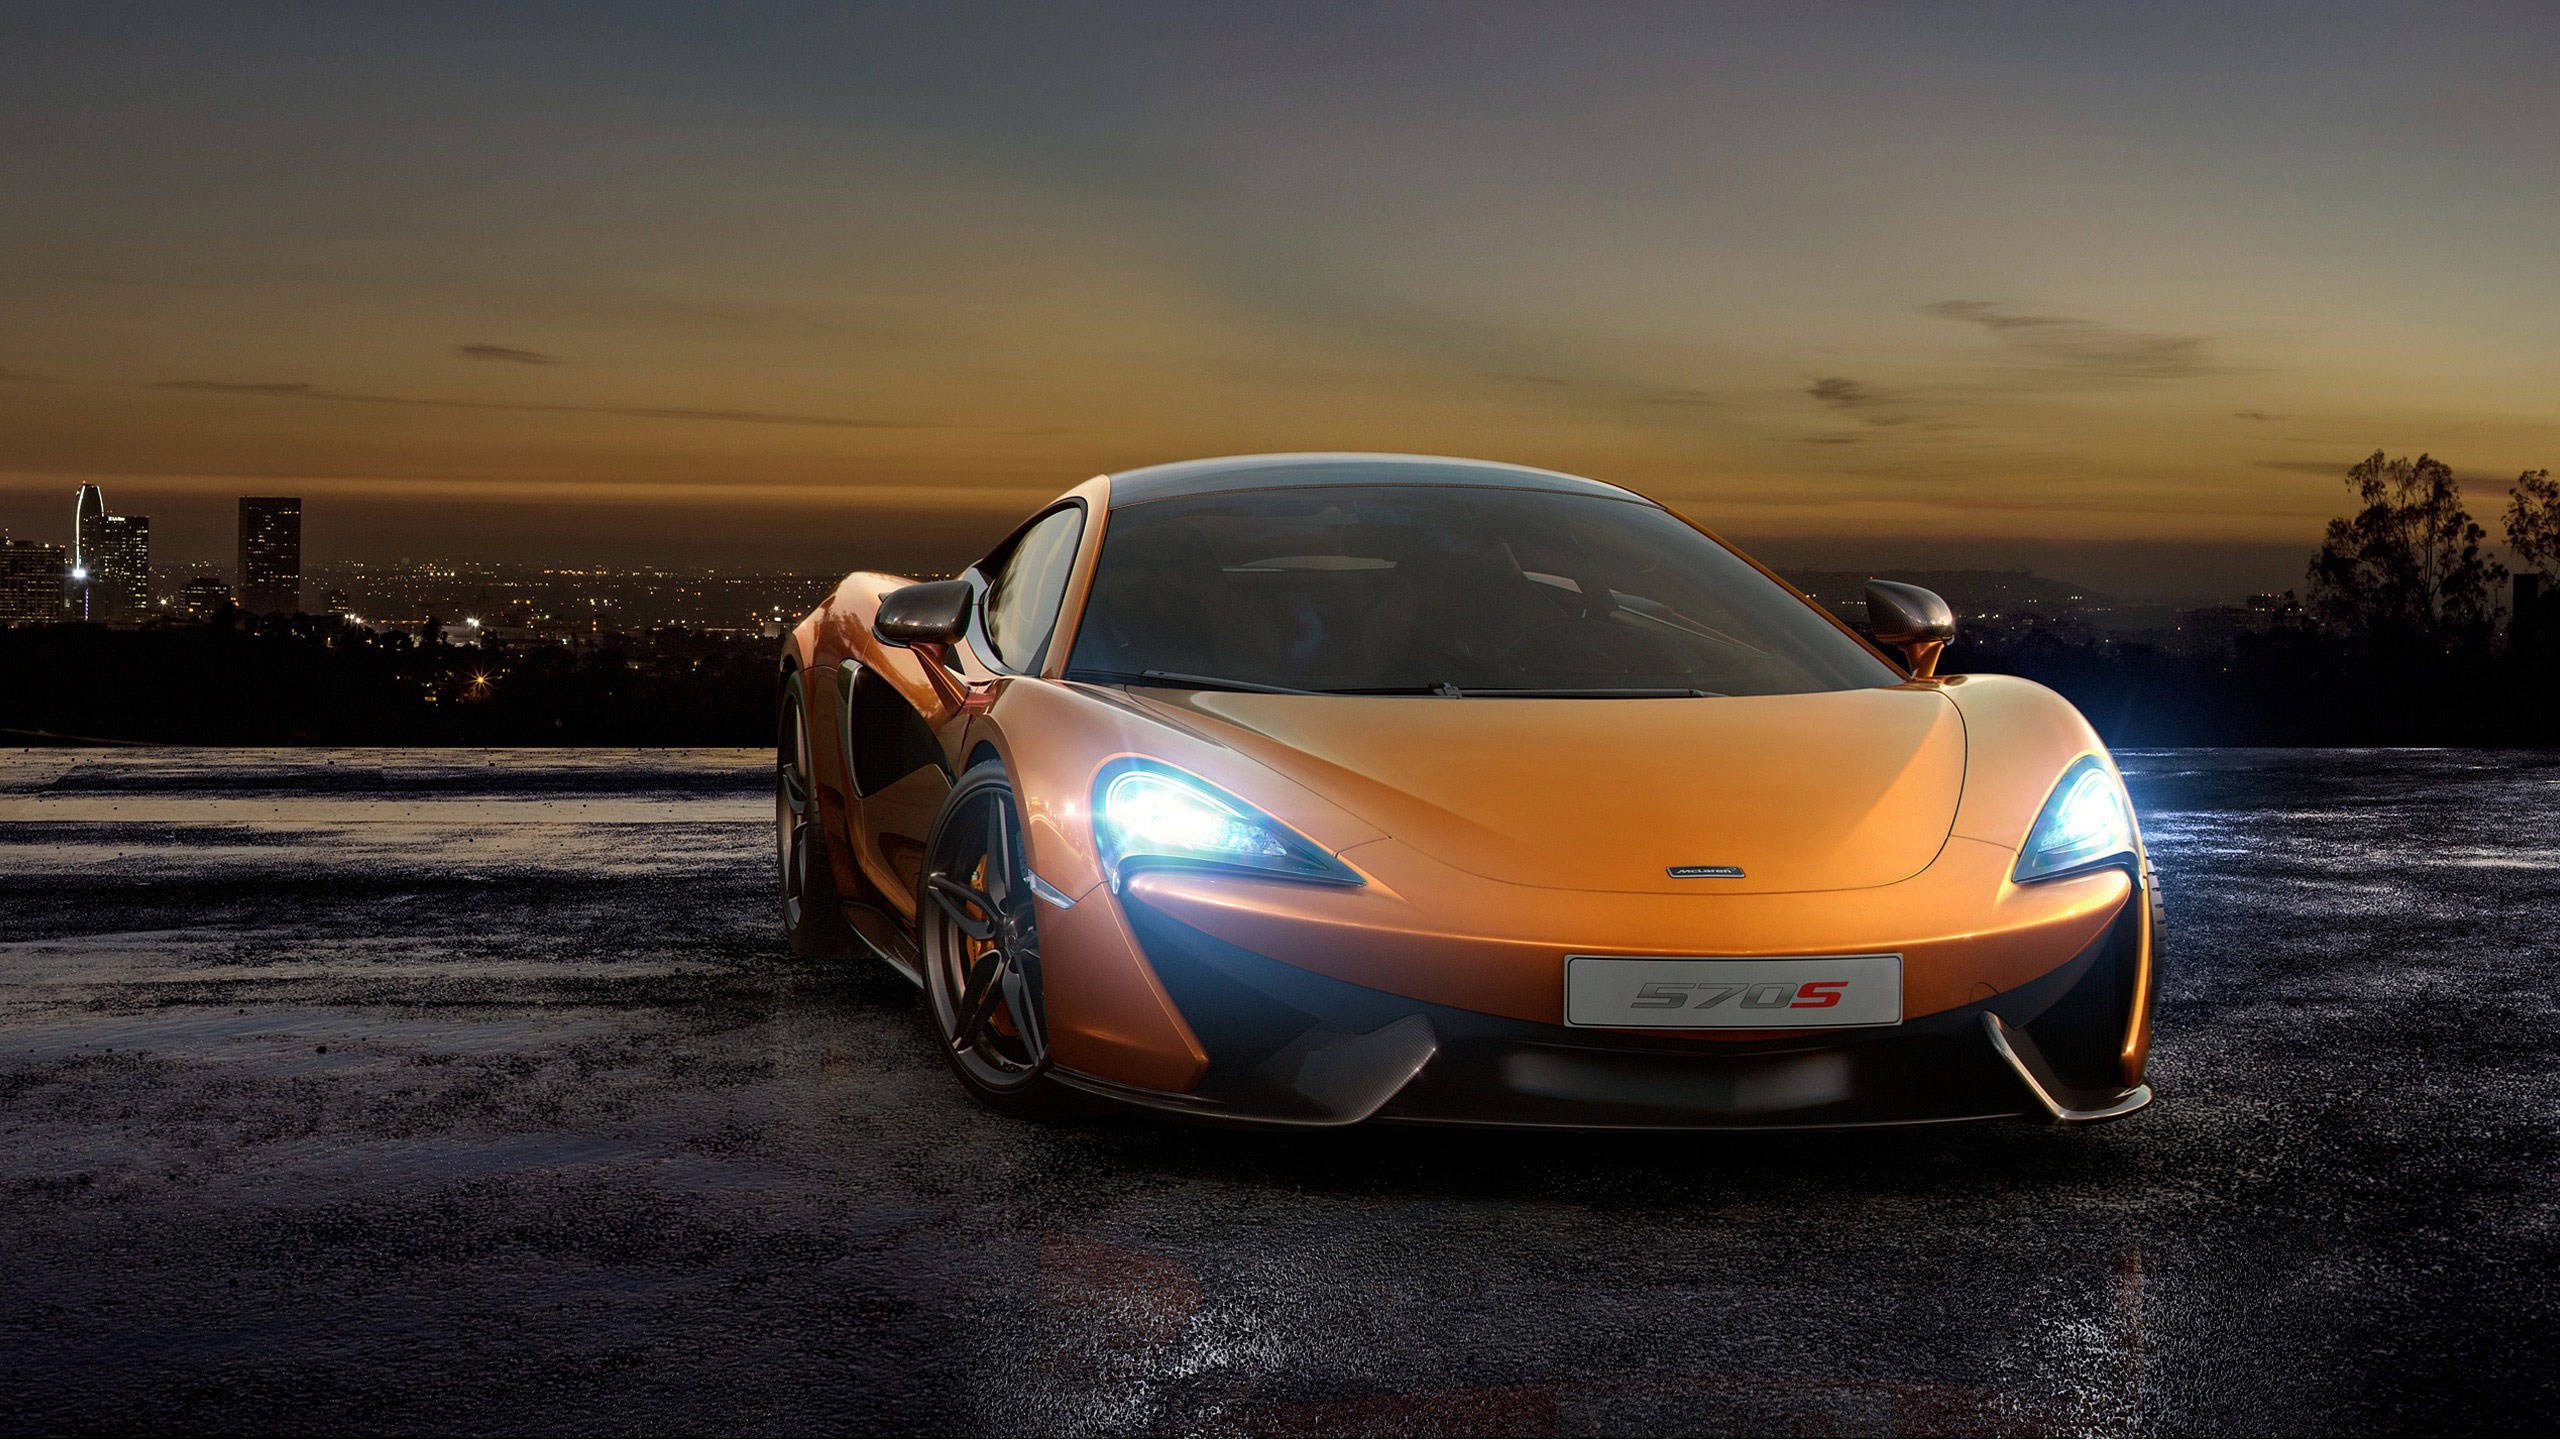 30 Beautiful and Great looking 3d car wallpapers HD 2560x1440